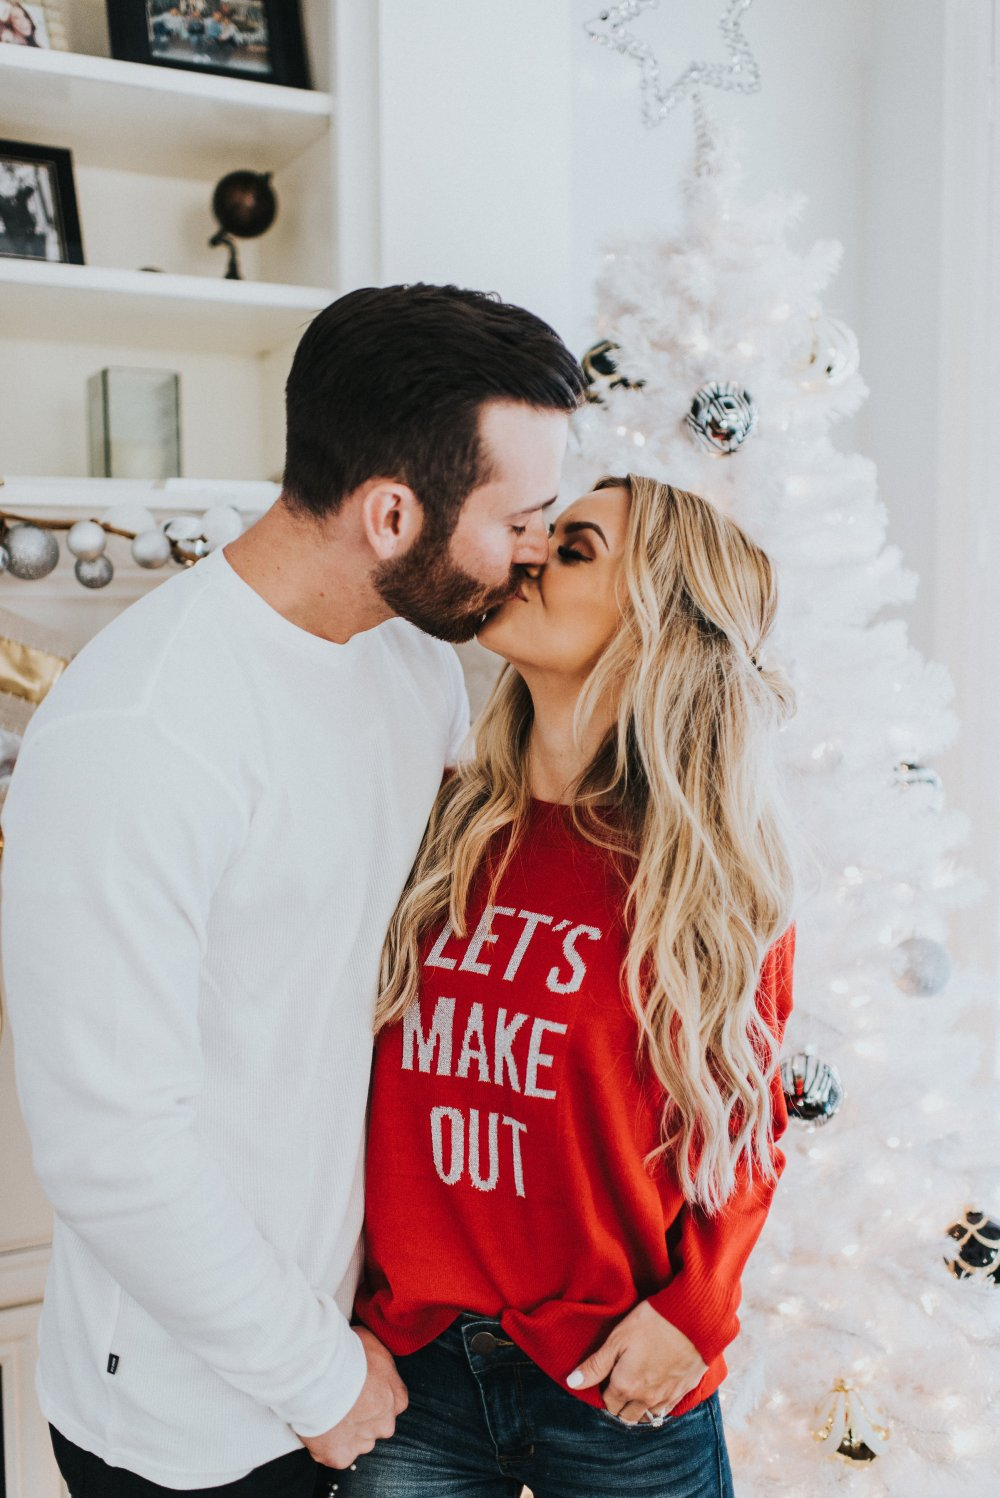 """The perfect Holiday lets make out sweater to wear on date nights or holiday parties! Date you spouse even after you are married and have kids! This """"Let's Make Out"""" sweater is the cutest! #trulydestiny #holidayoutfits #dateyourspouse"""